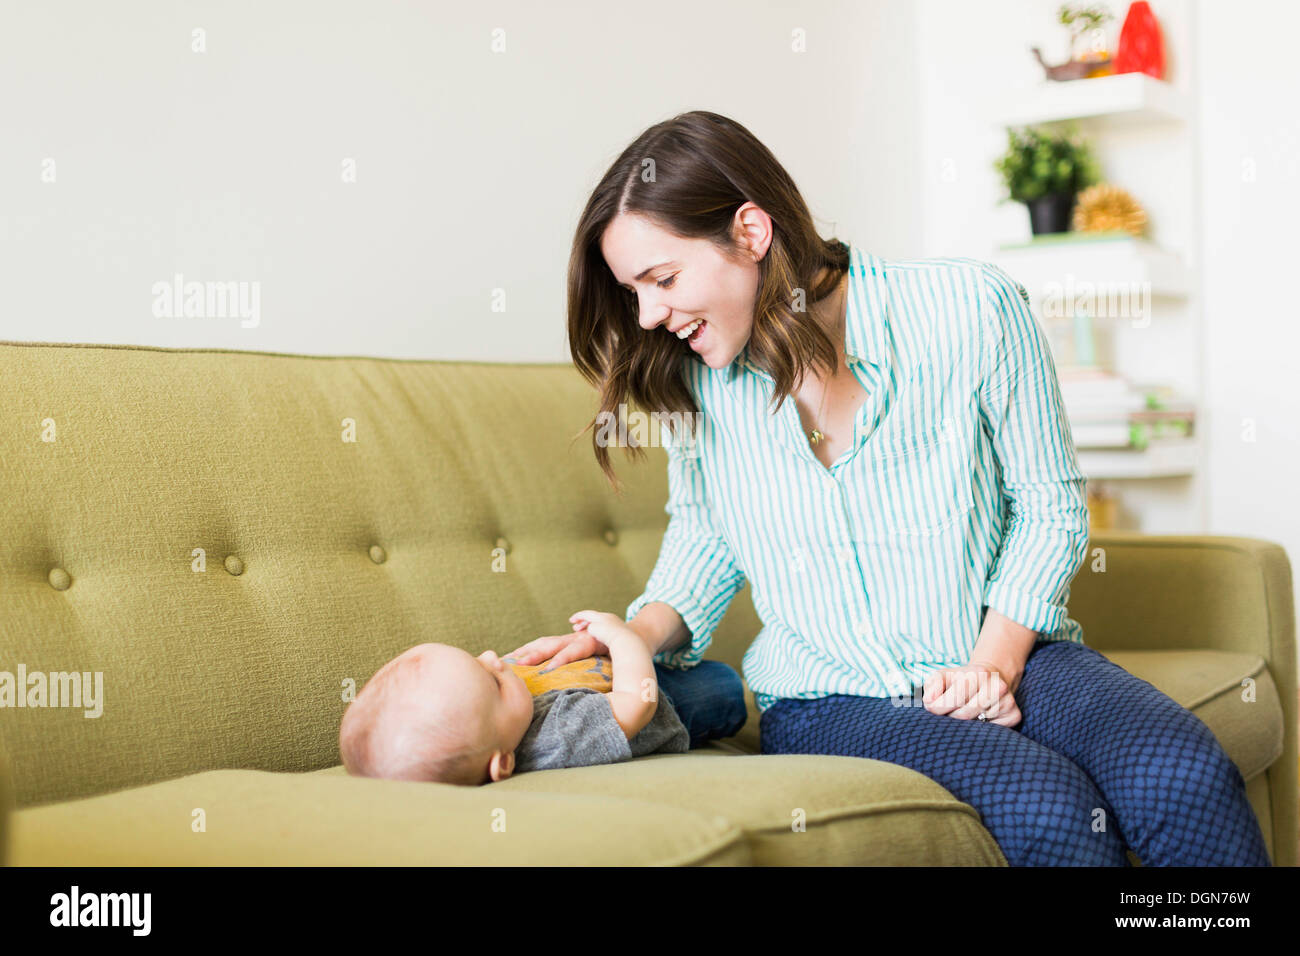 mutter auf sofa spielen mit baby 6 11 monate stockfoto bild 61932273 alamy. Black Bedroom Furniture Sets. Home Design Ideas